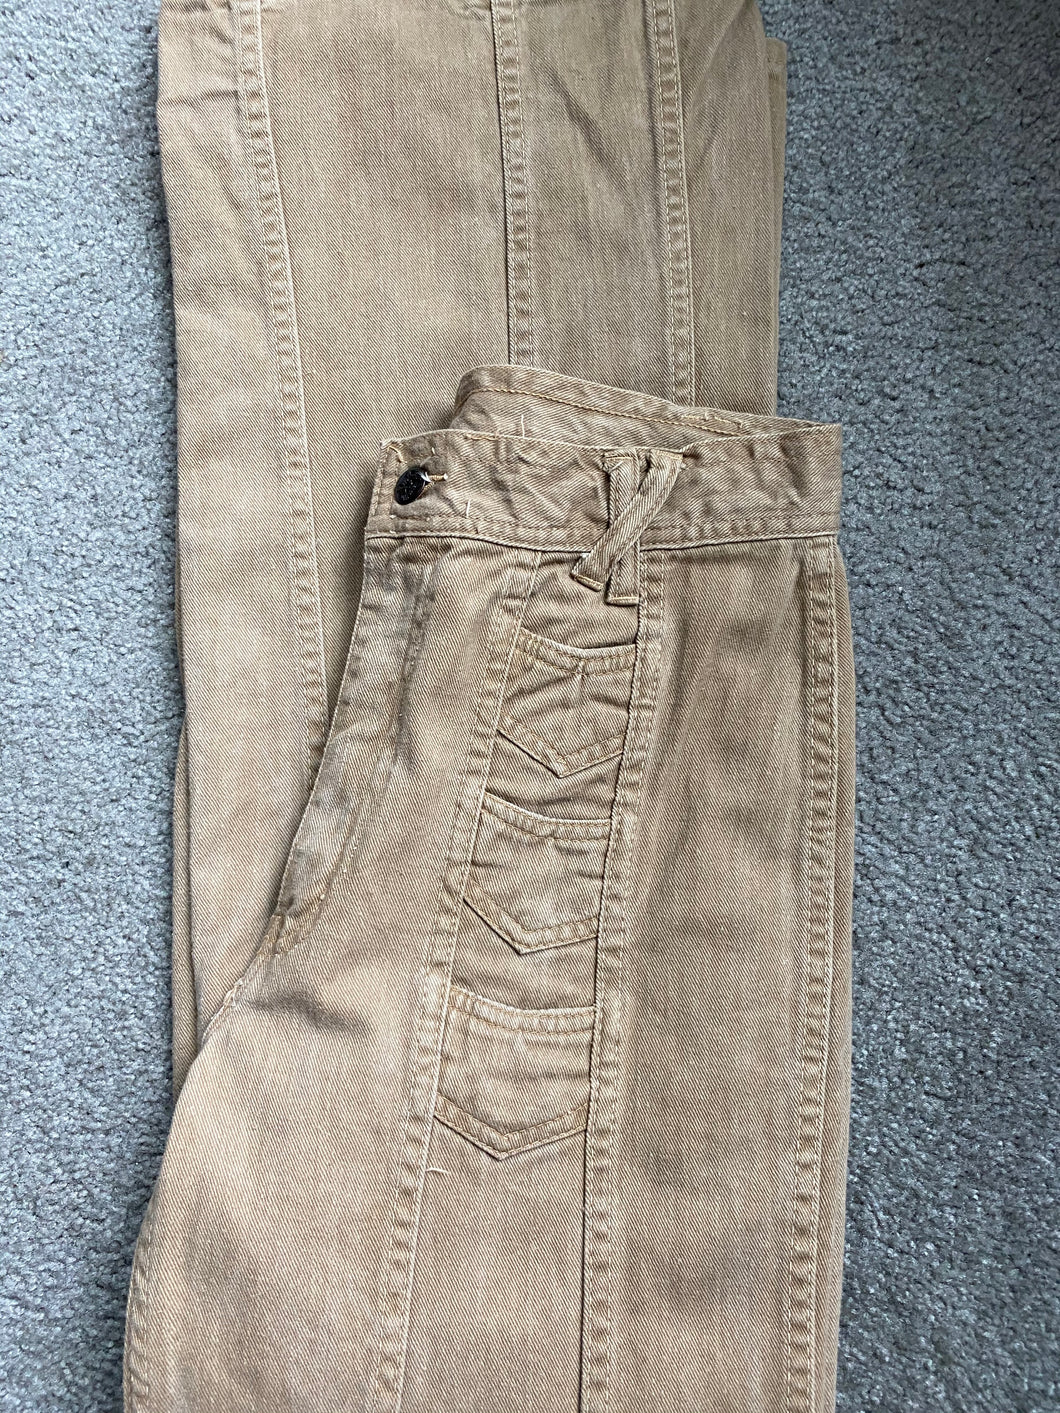 1970s Men's Tall Vintage Hands Off Light Brown Cotton Flare Pants 31